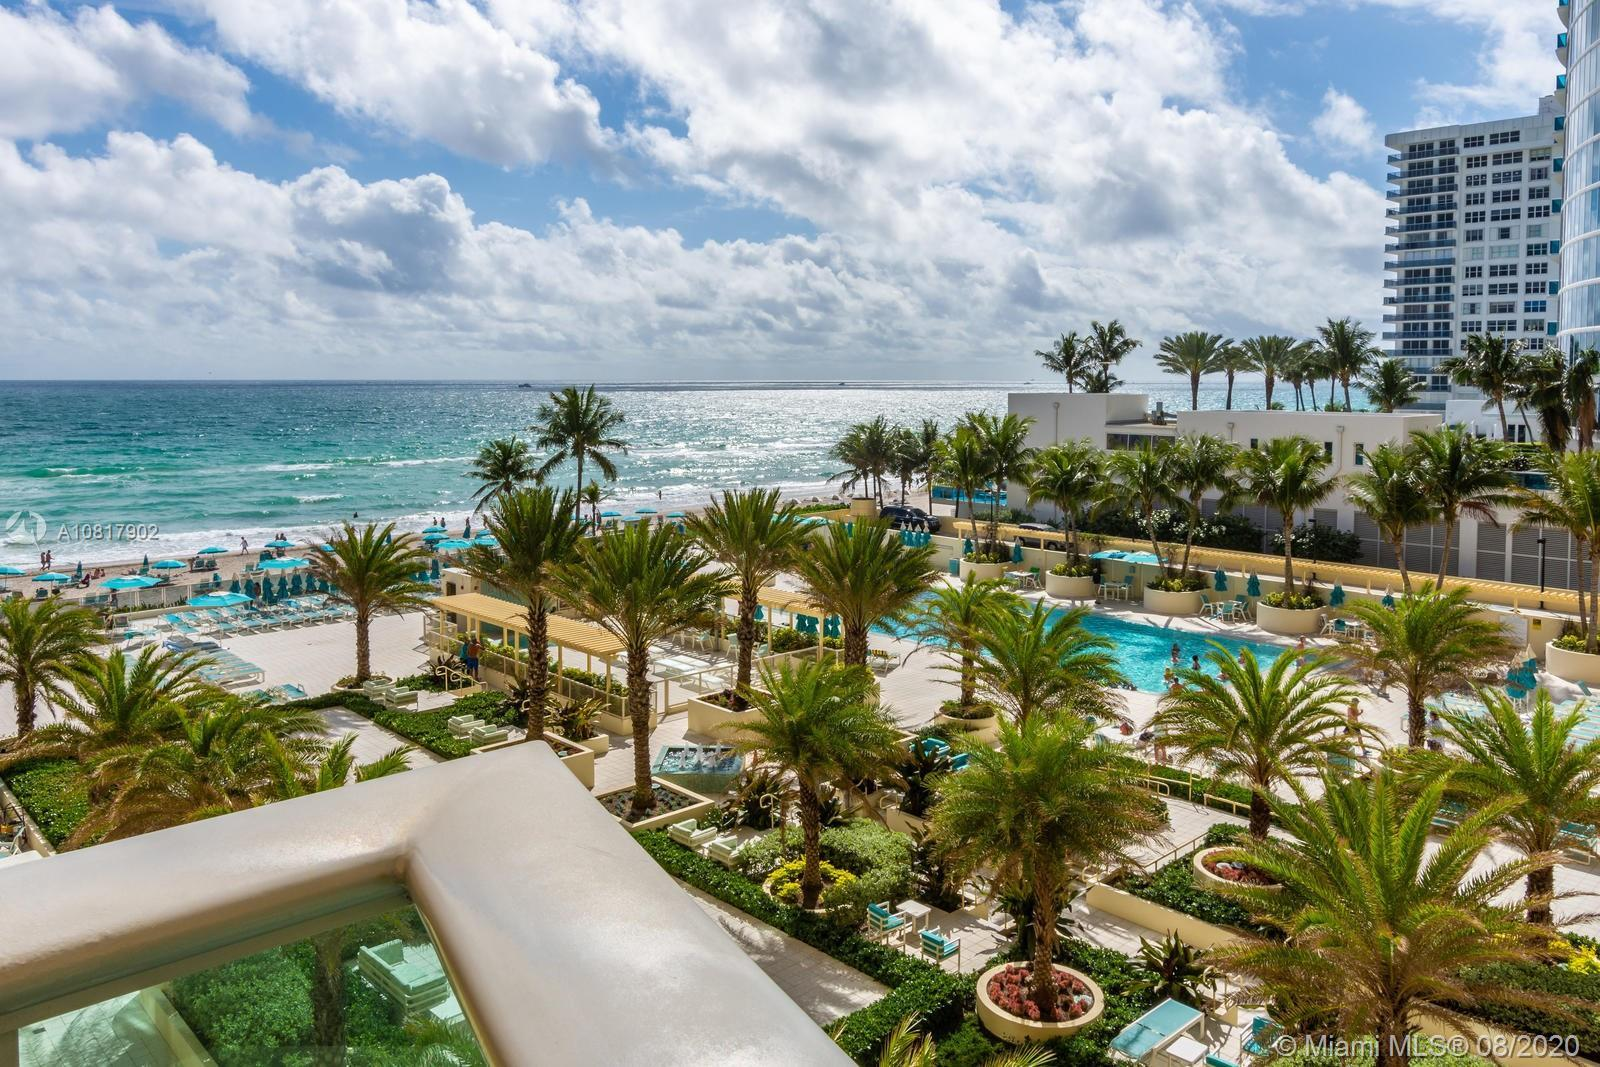 ENJOY BREATHTAKING OCEAN AND POOL AREA VIEWS FROM YOUR LARGE TERRACE. RARELY AVAILABLE CONDO AT THE